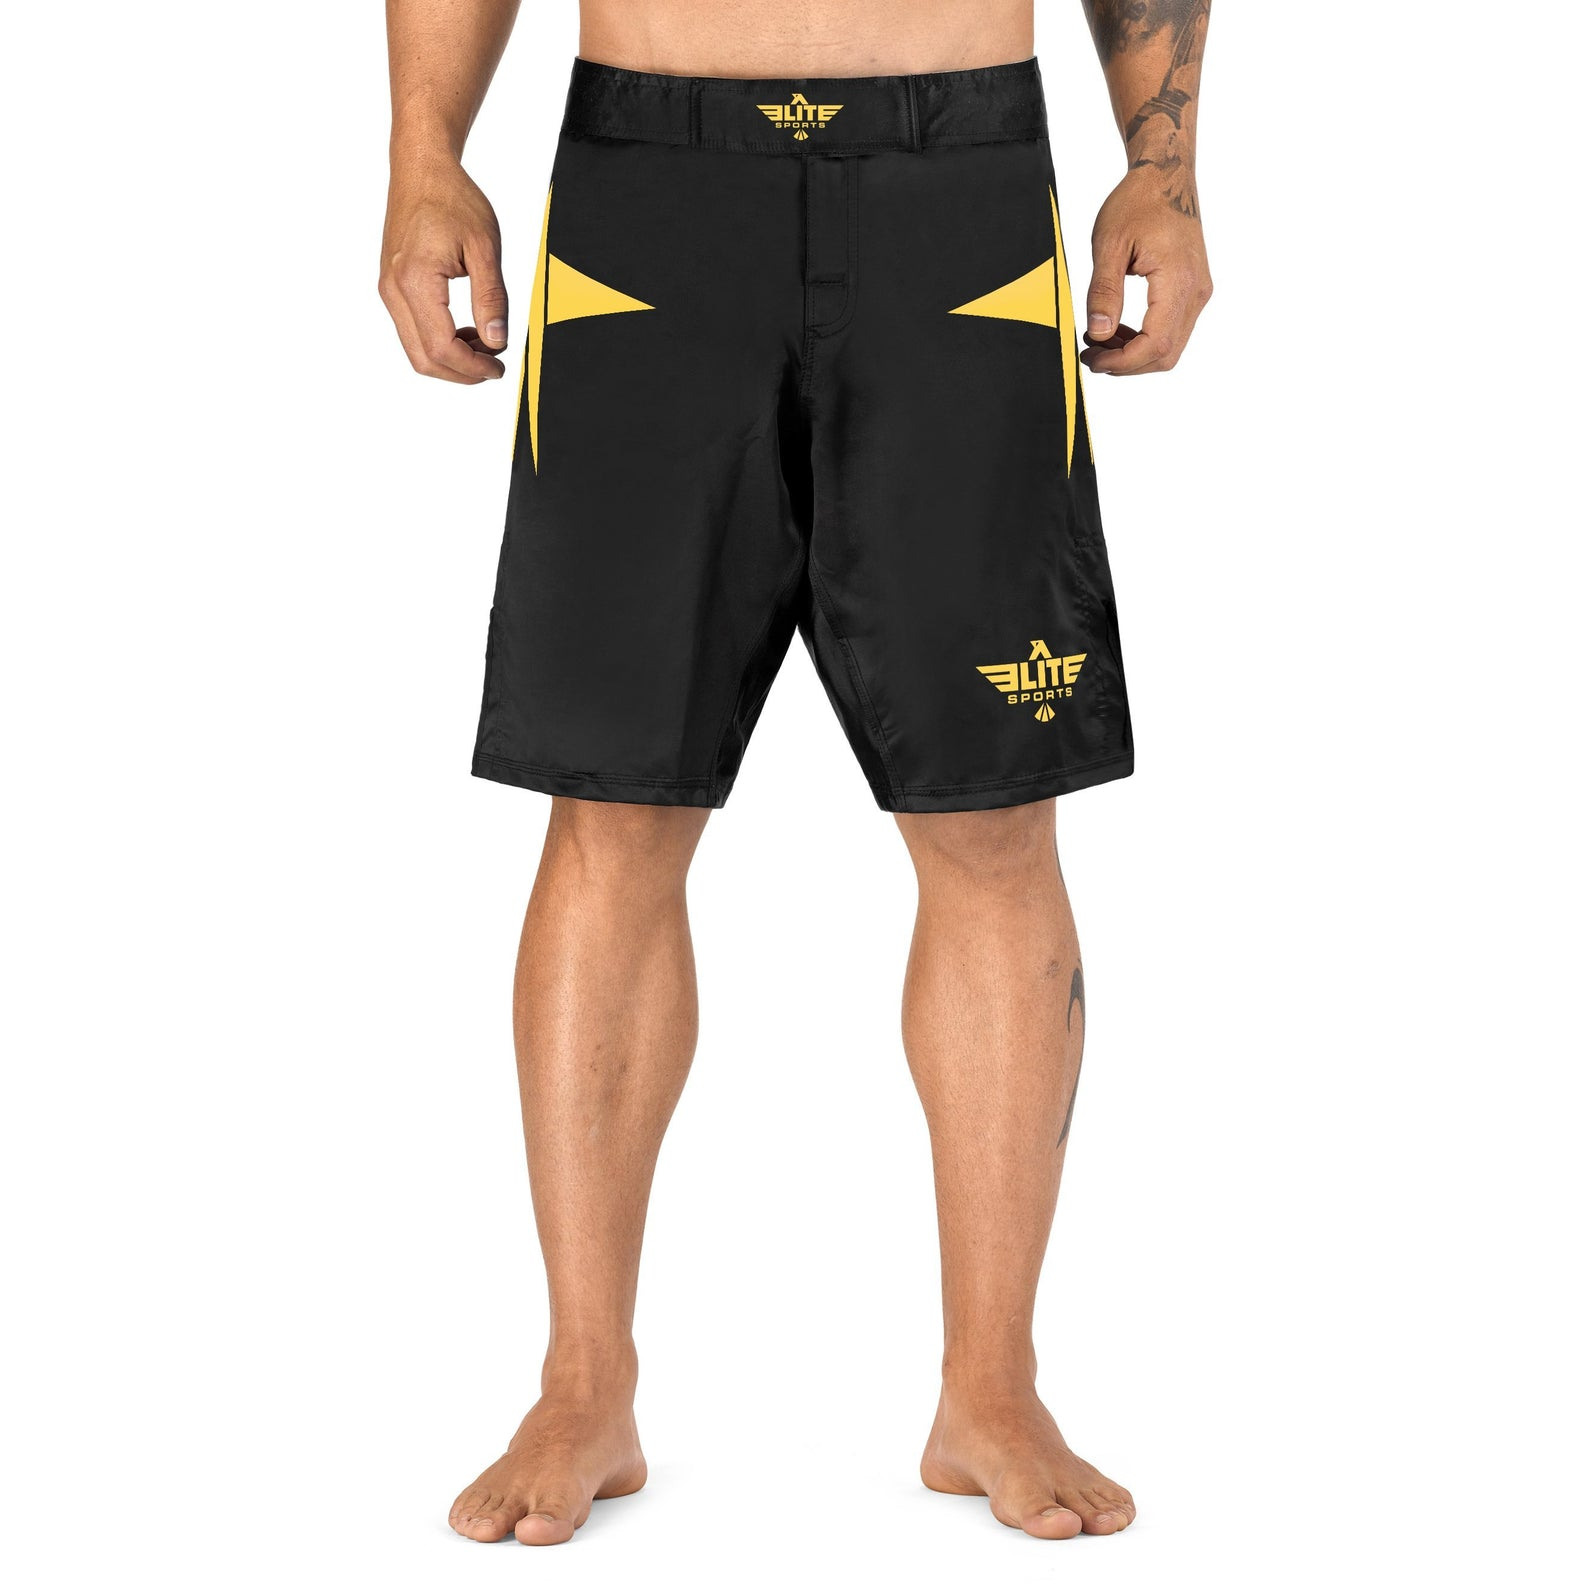 Elite Sports Star Series Sublimation Black/Gold Training Shorts